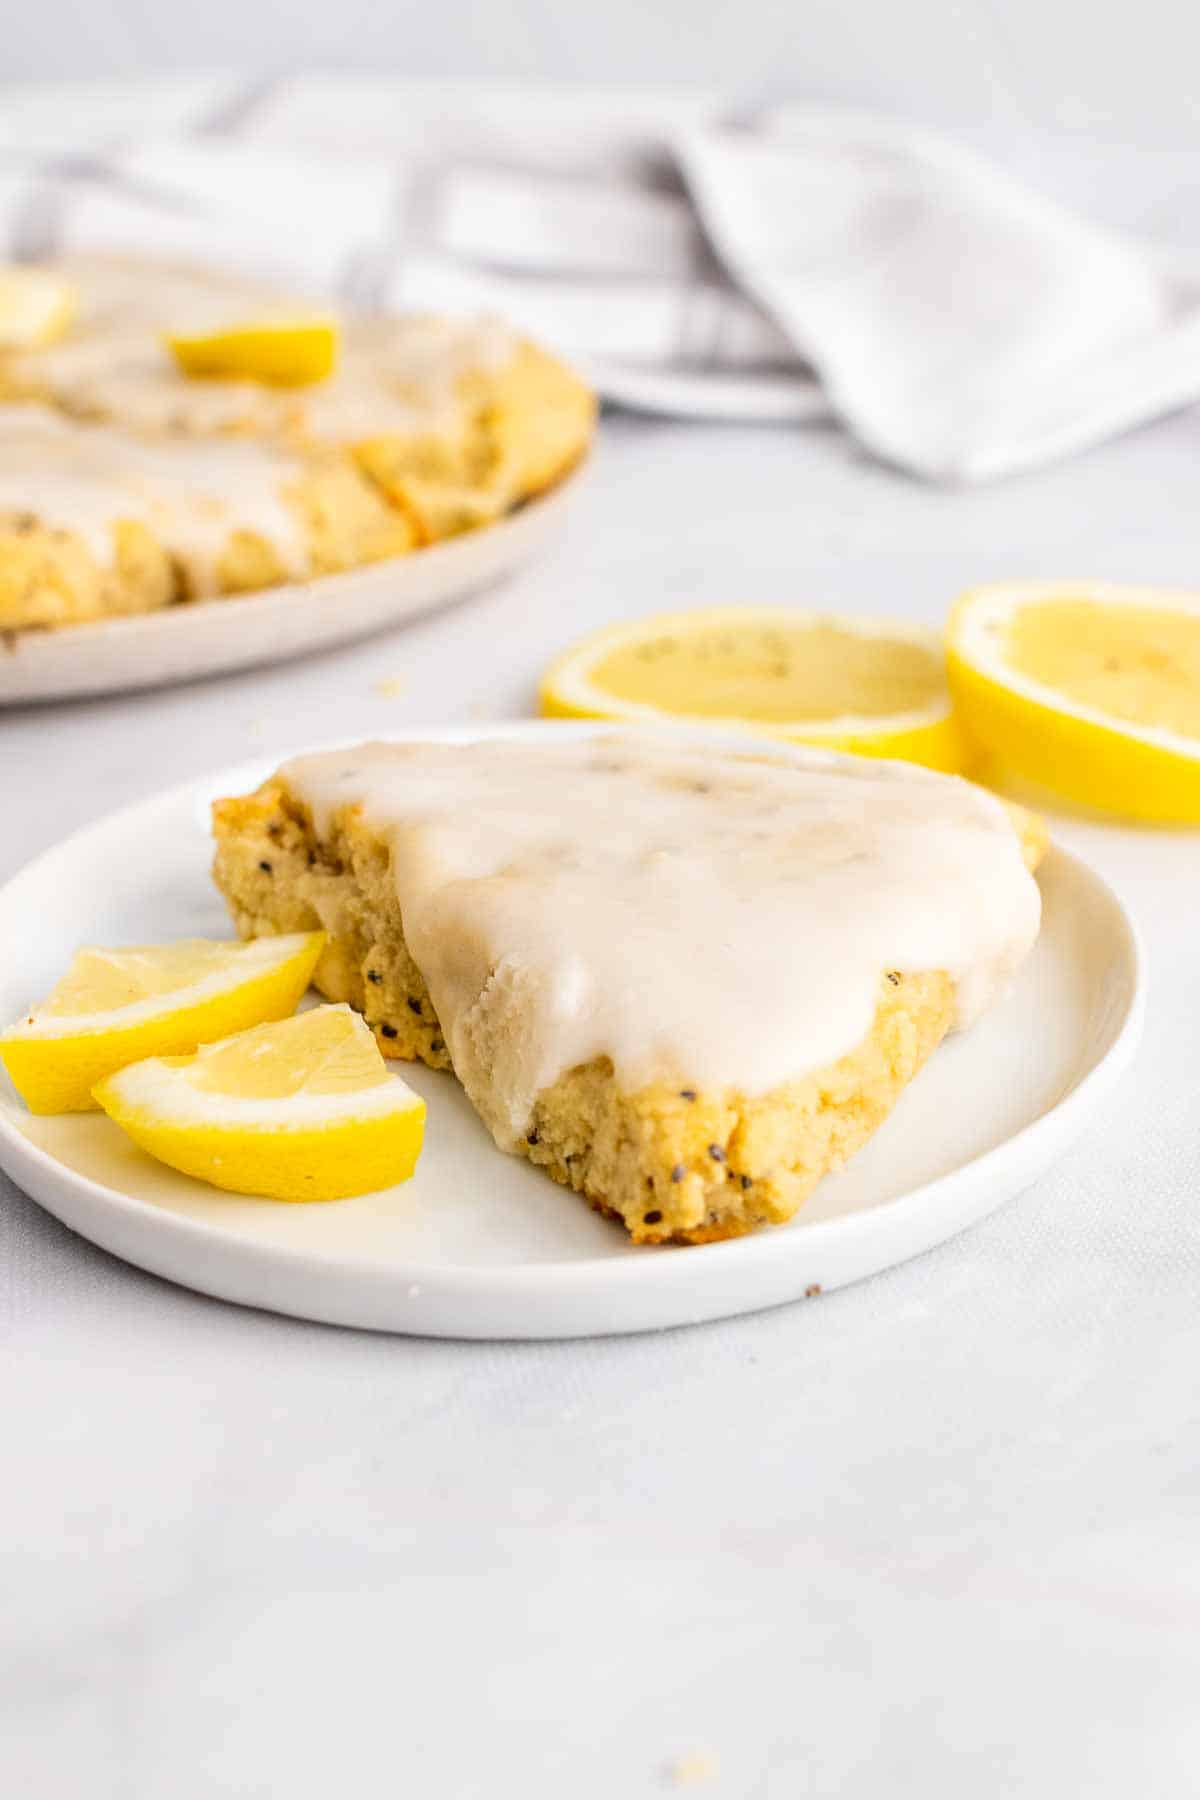 A slice of scone on a white plate next to two quartered lemon slices